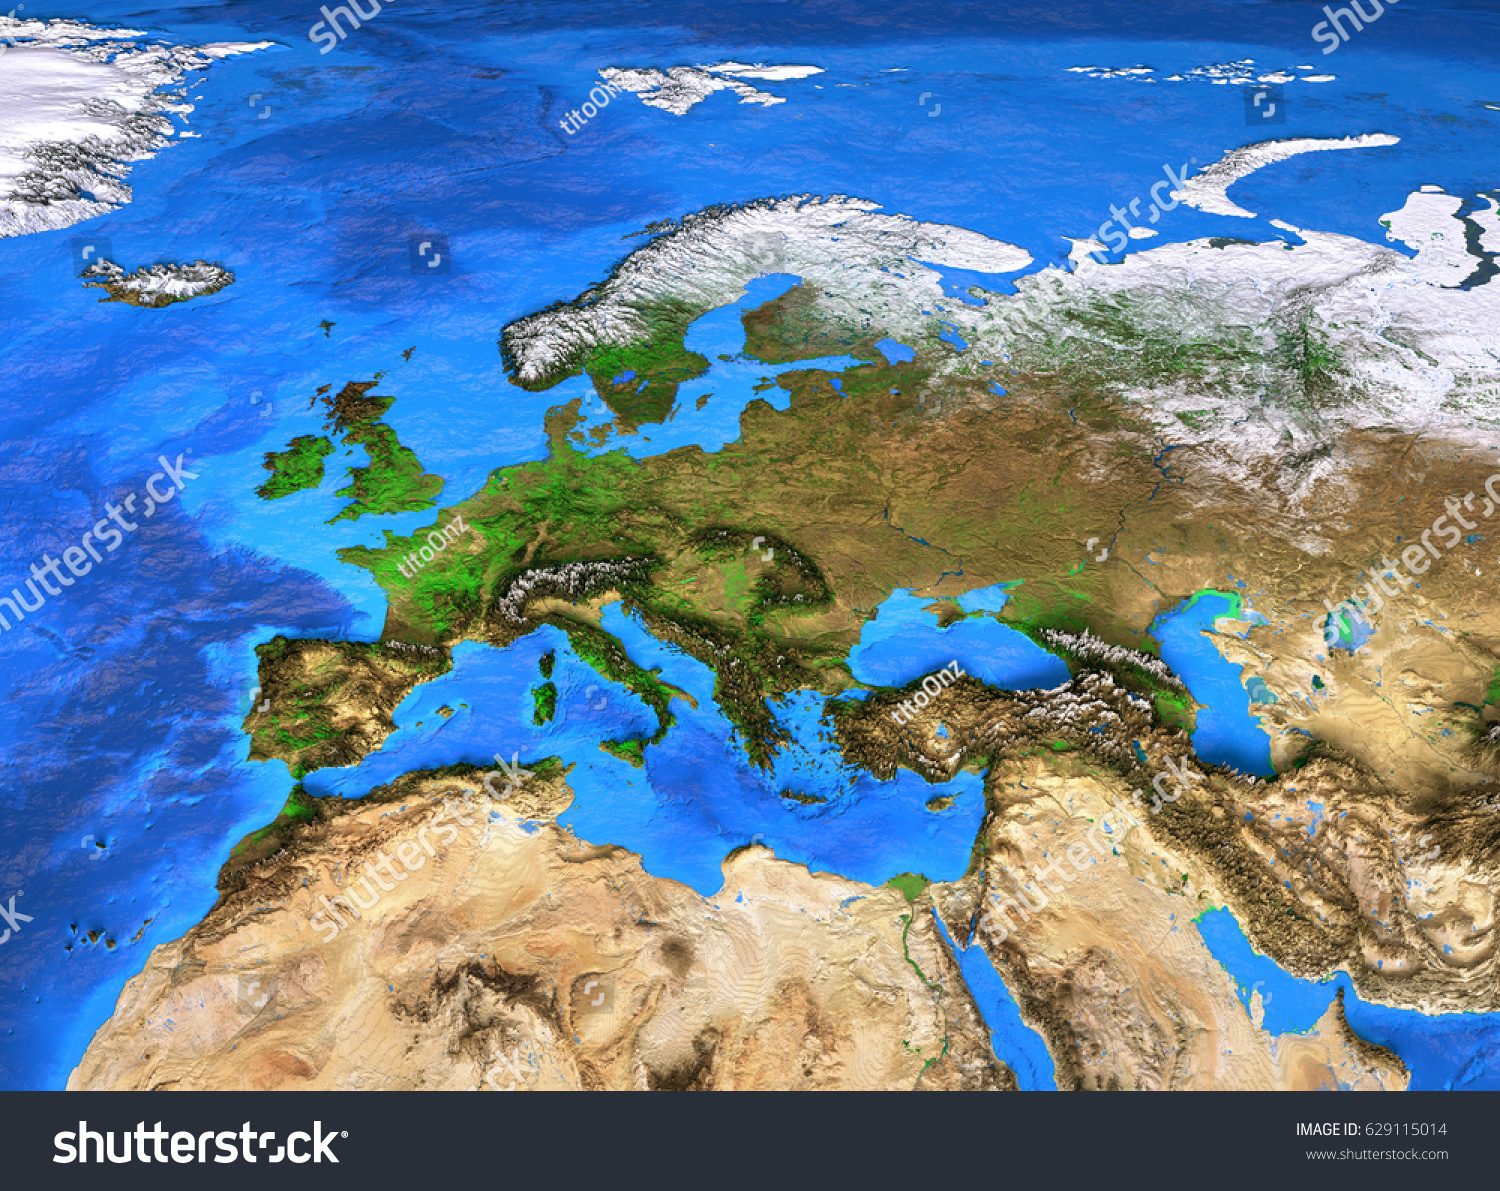 Europe Map Detailed Satellite View Earth Stockillustration 629115014 ...